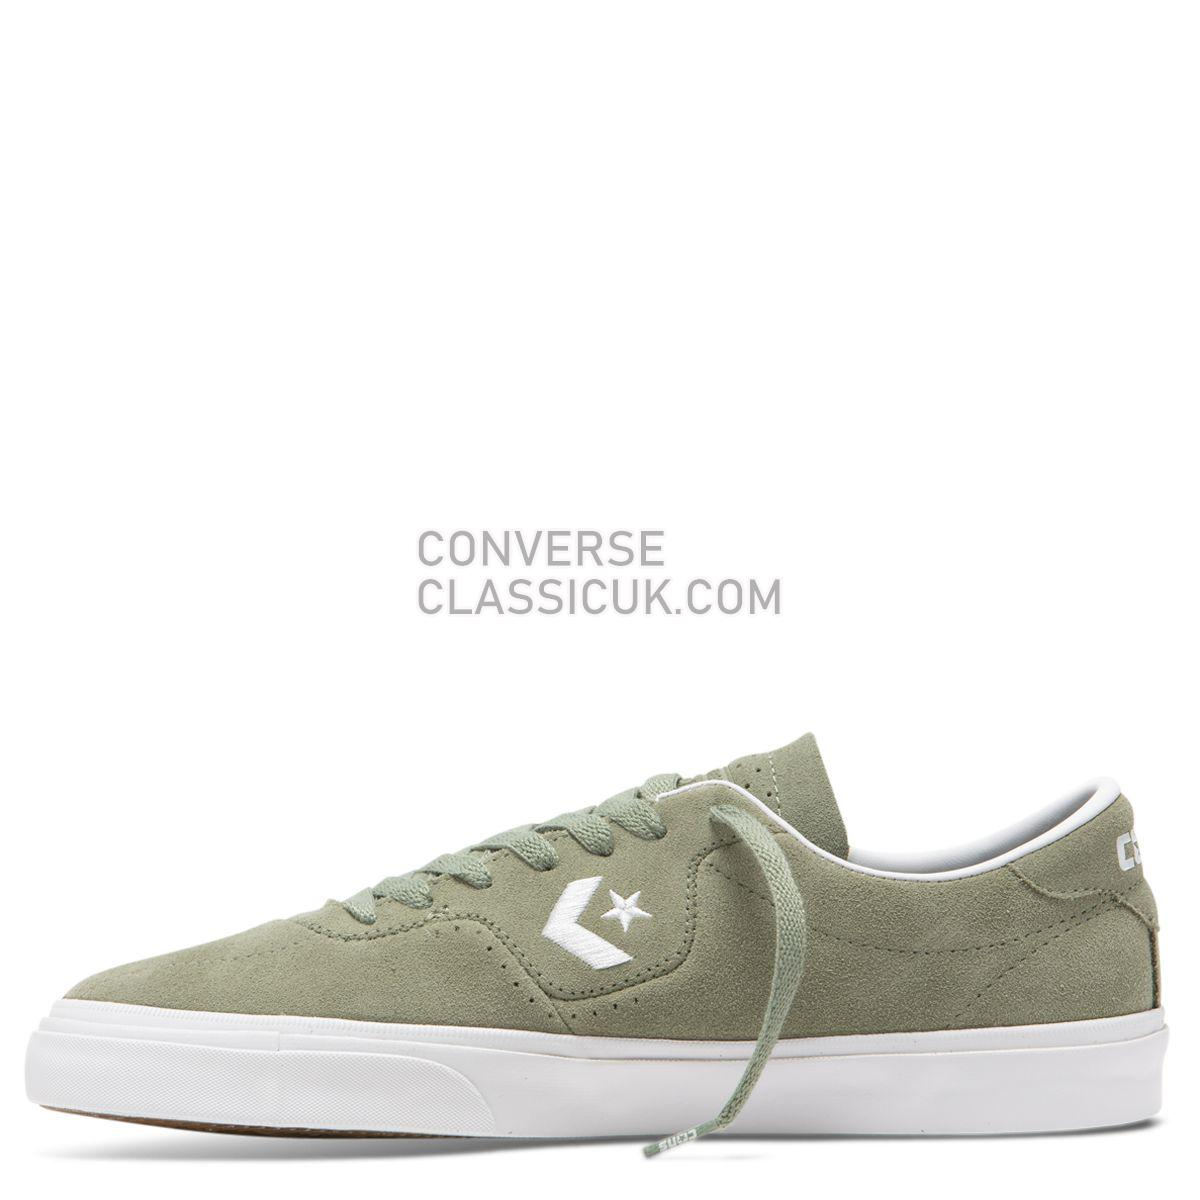 Converse CONS Louie Lopez Pro Classic Suede Low Top Jade Stone Mens 165271 Jade Stone/White/White Shoes